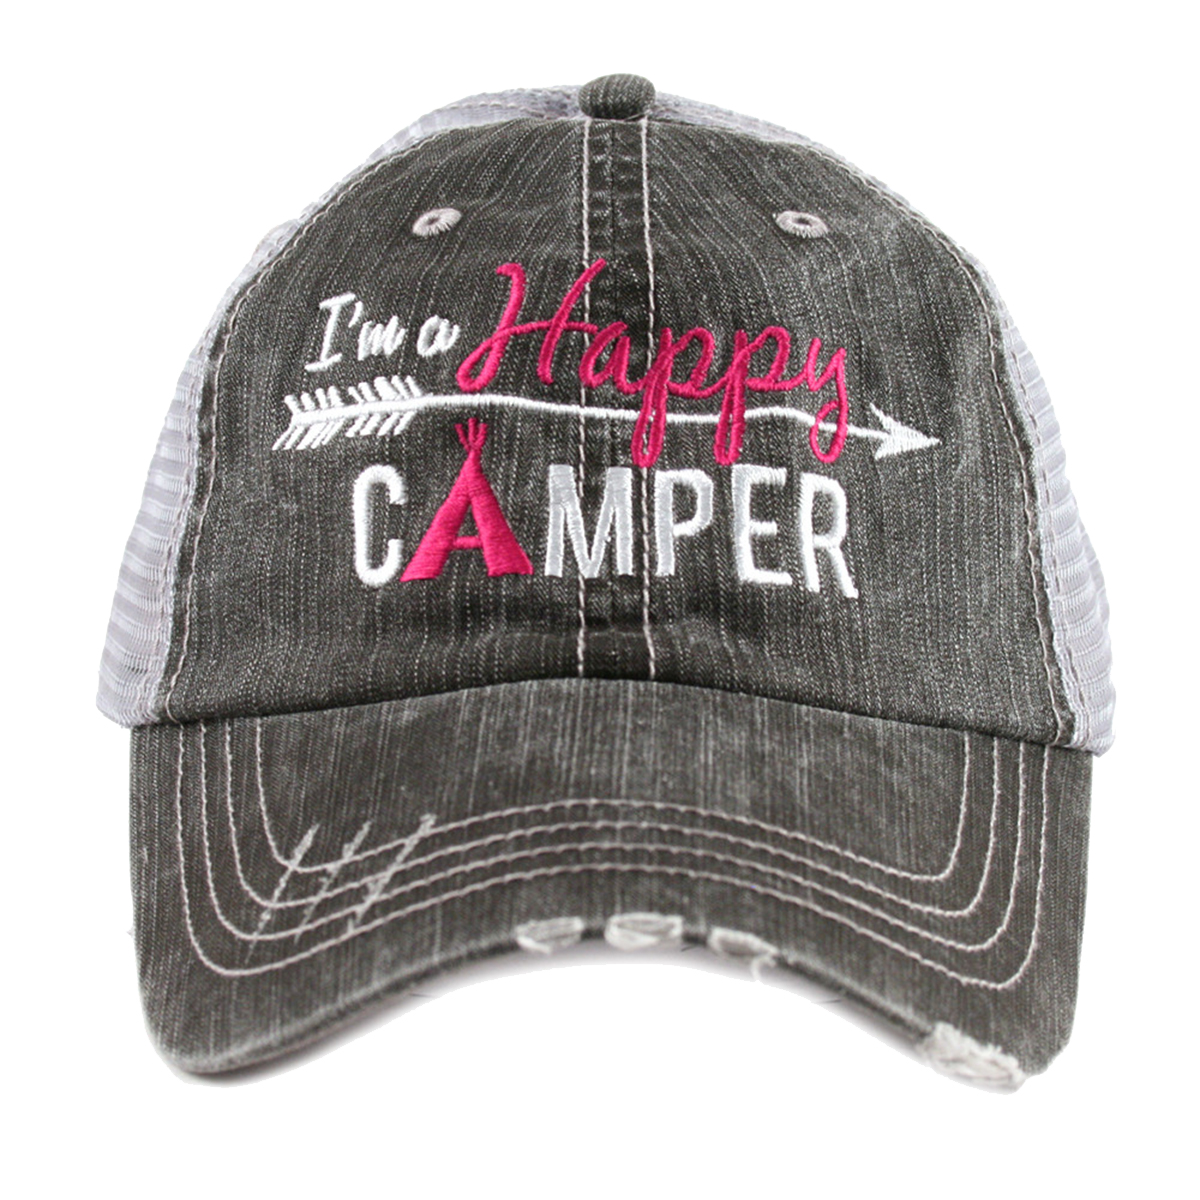 90c165f33c1c5 Details about Katydid Happy Camper Women s Trucker Hat